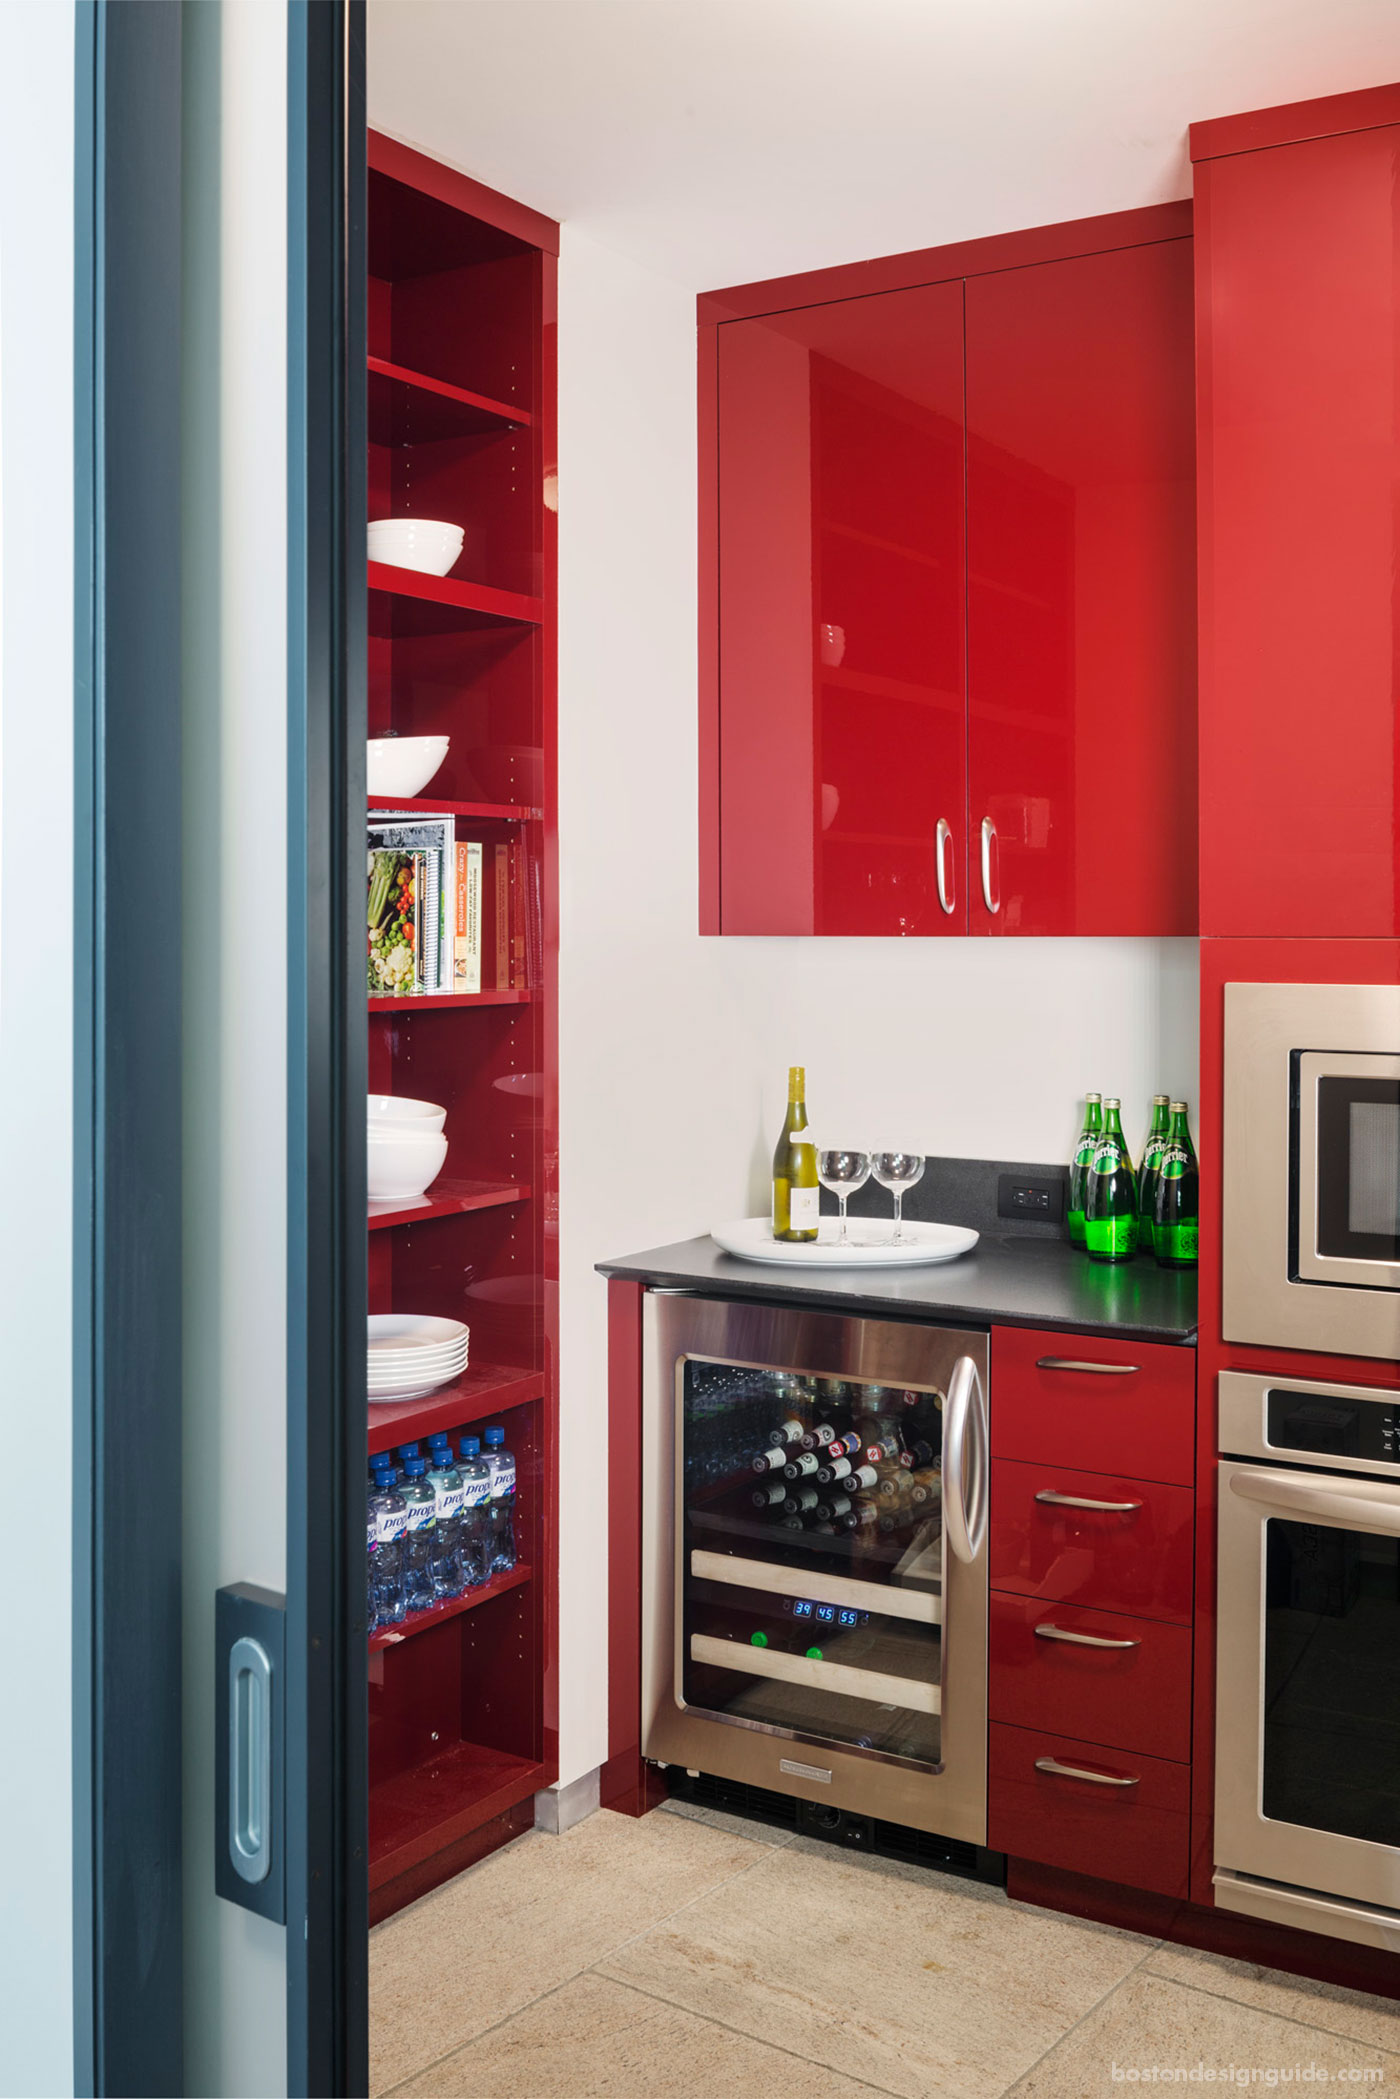 Custom red pantry by LDa Architecture & Interiors